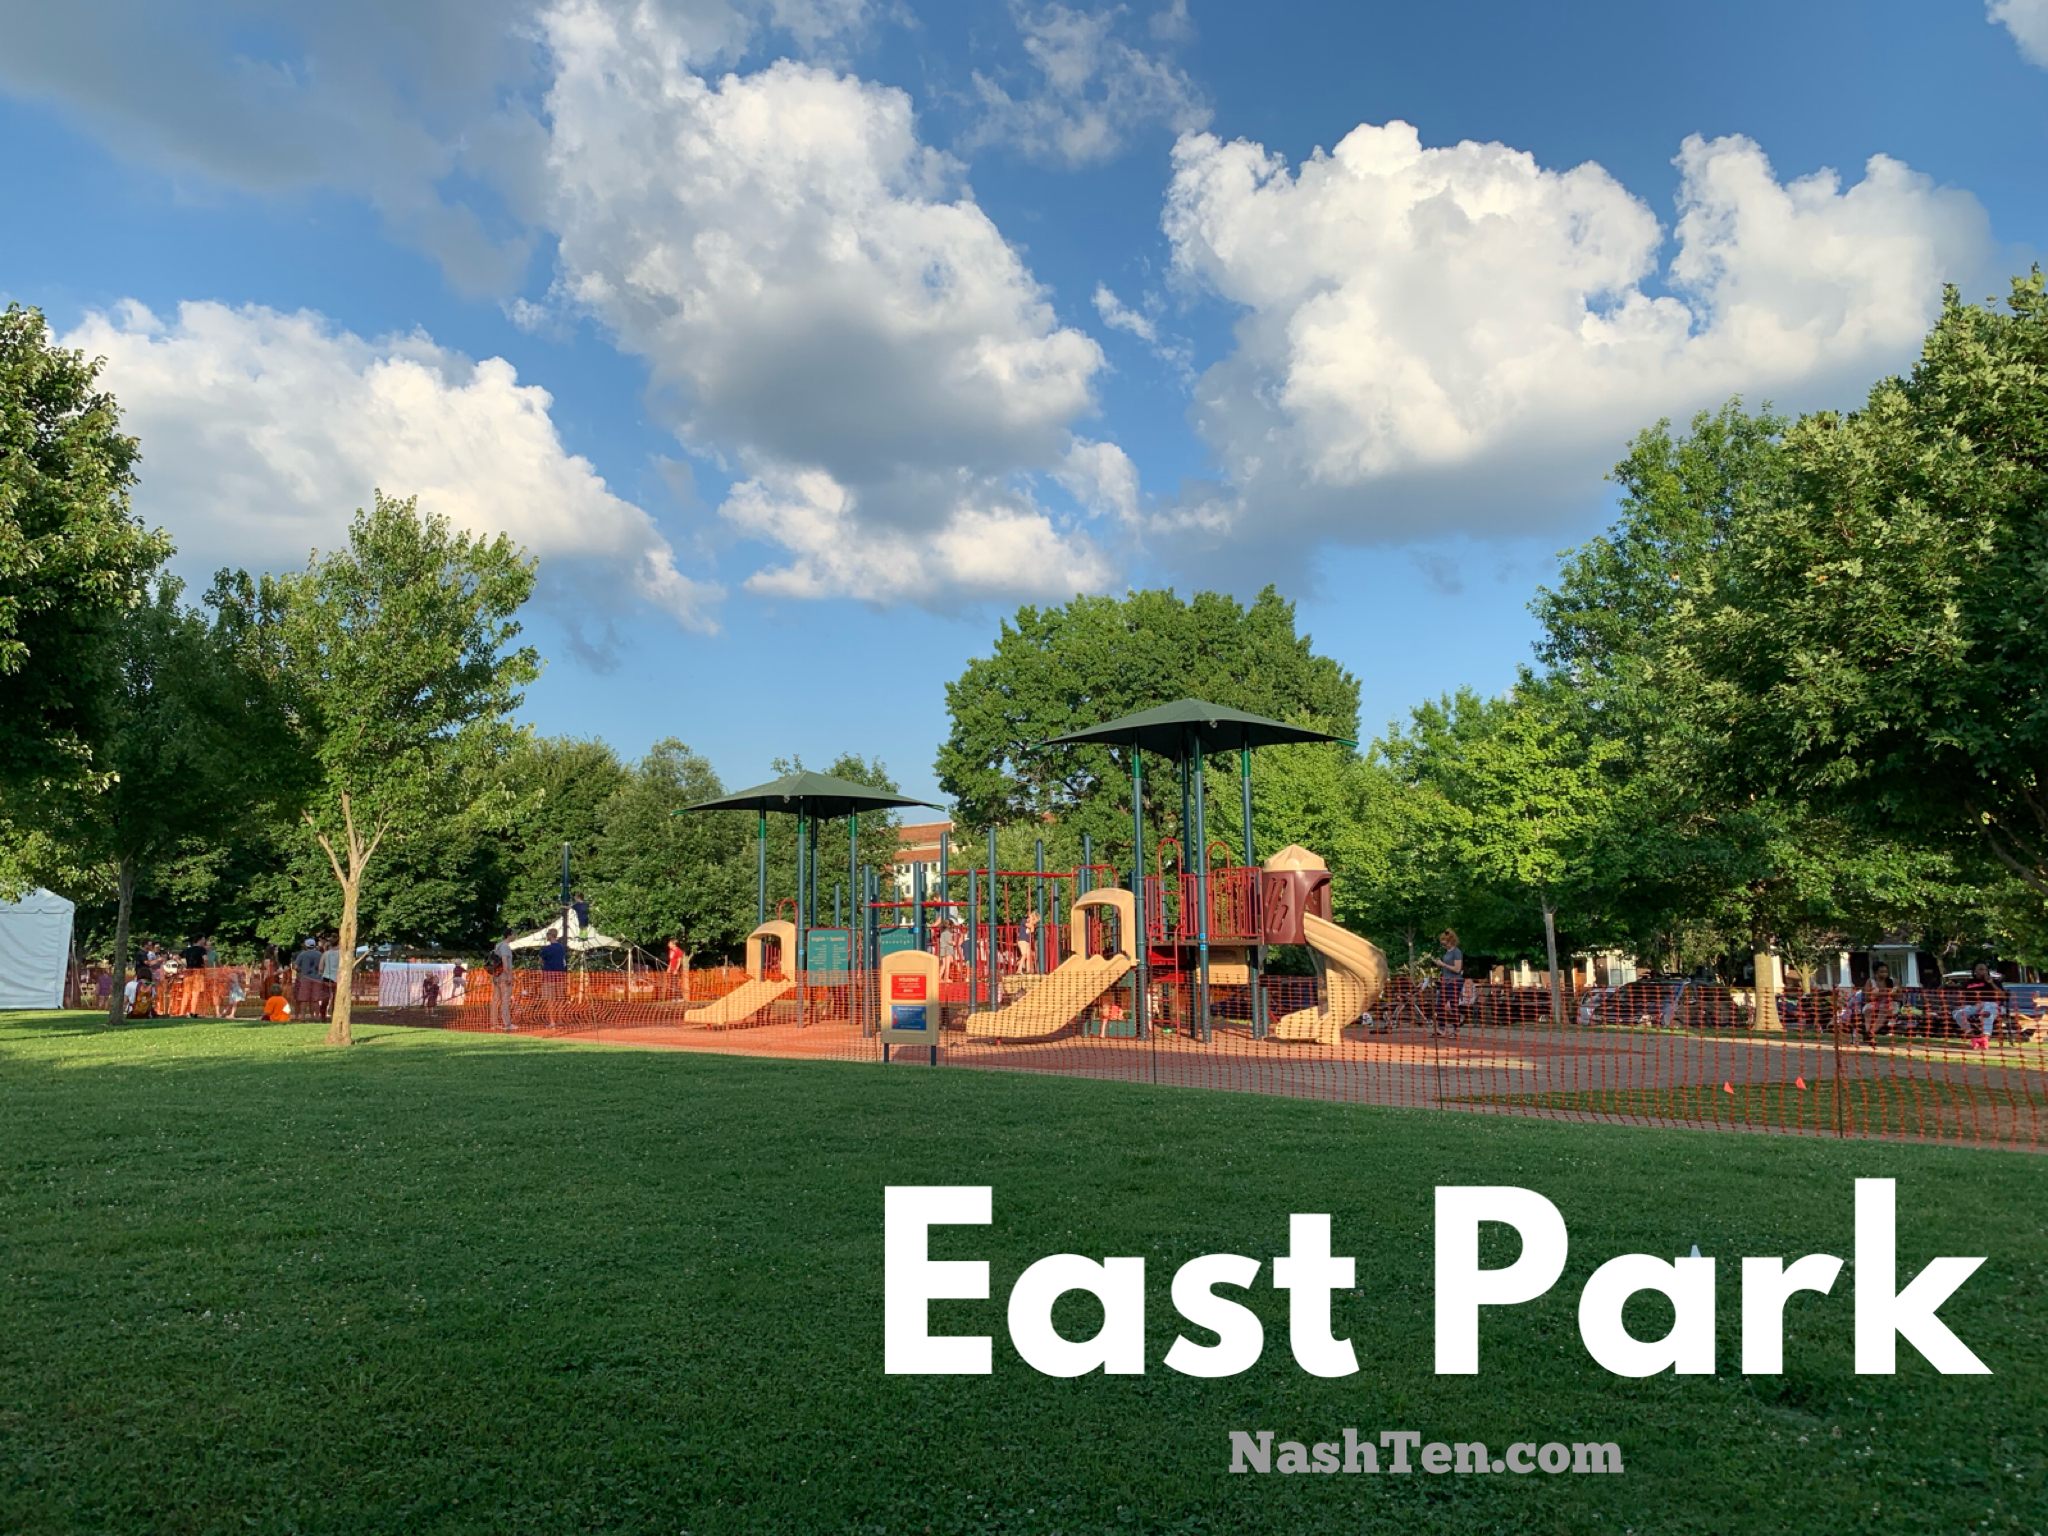 East Park - Nashville TN